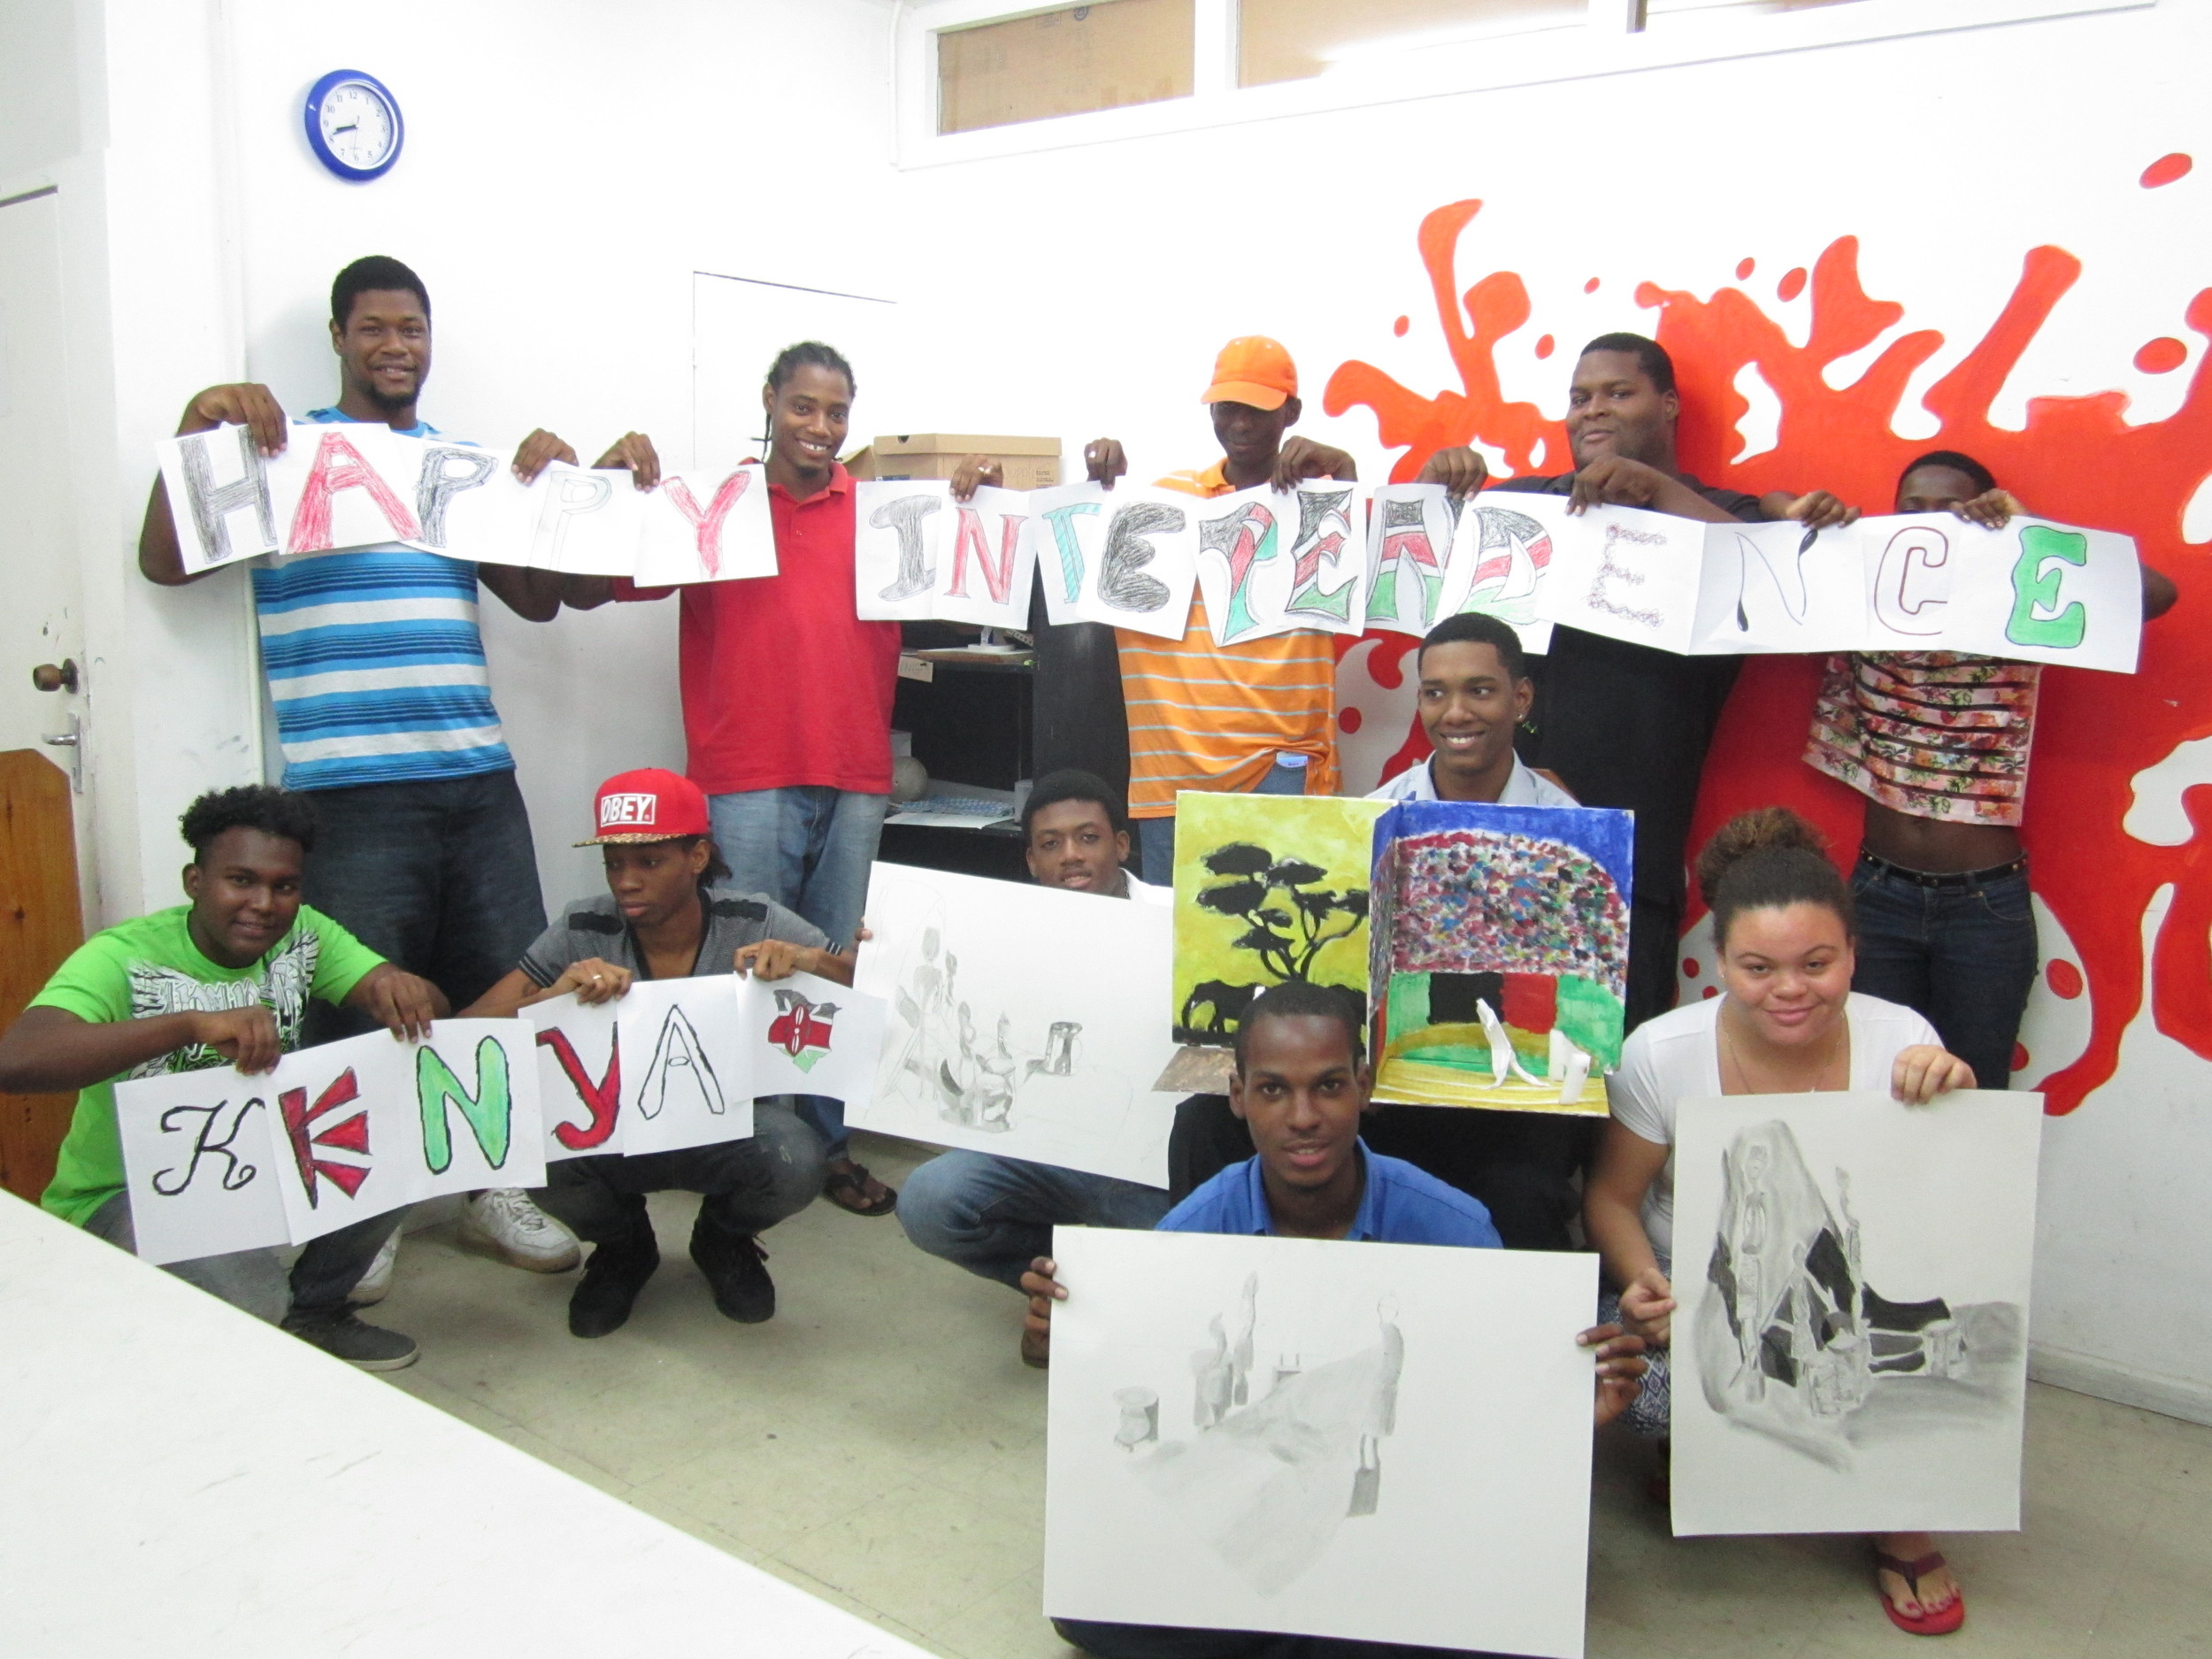 On Kenya's independence day (Dec 12), students at the School of Art & Design in St. Lucia create art that is inspired by the rich culture of Kenya.